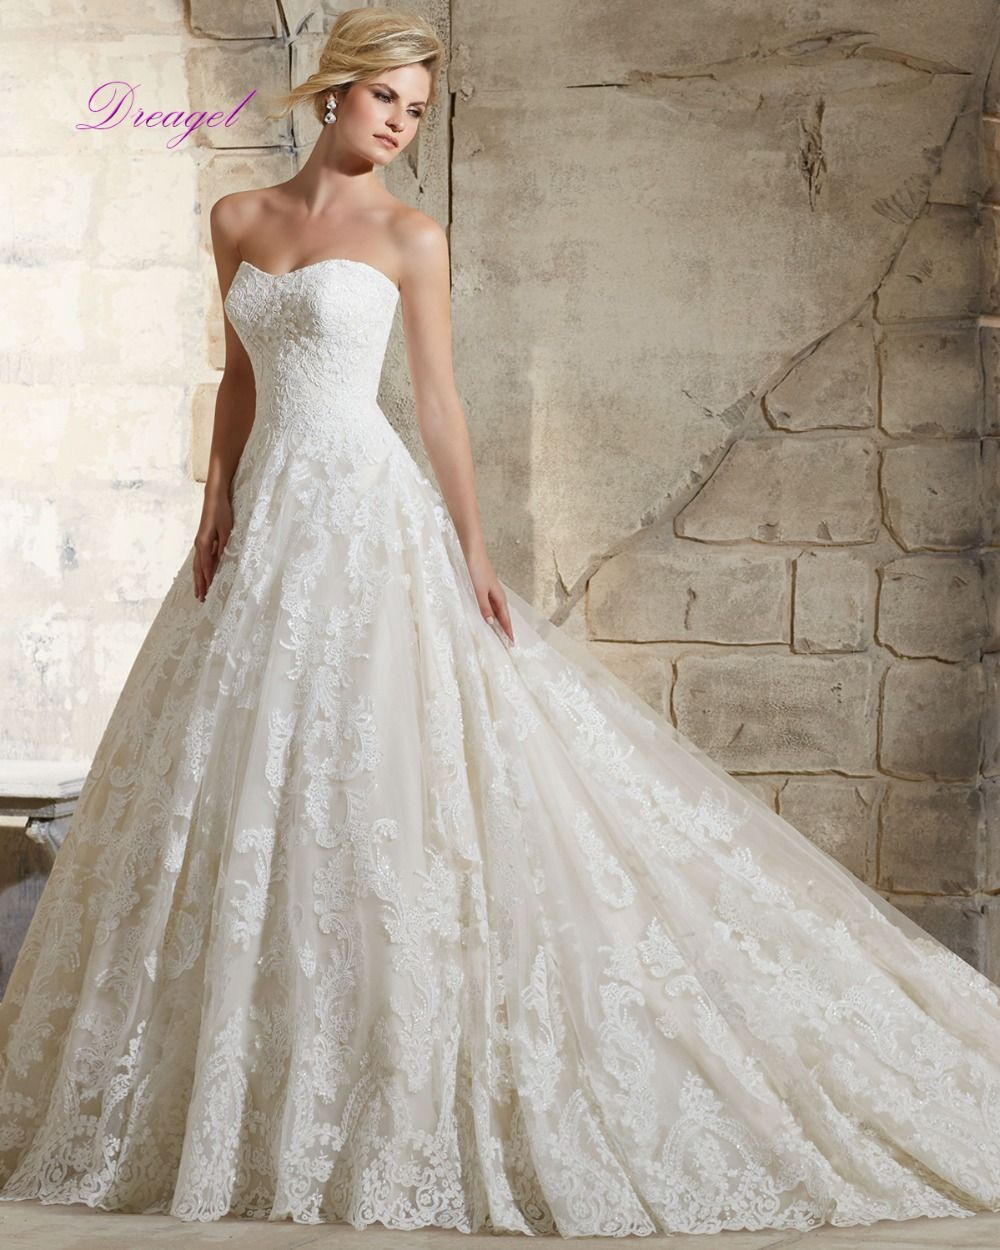 Dreagel new designer strapless zipper court train ball gown wedding